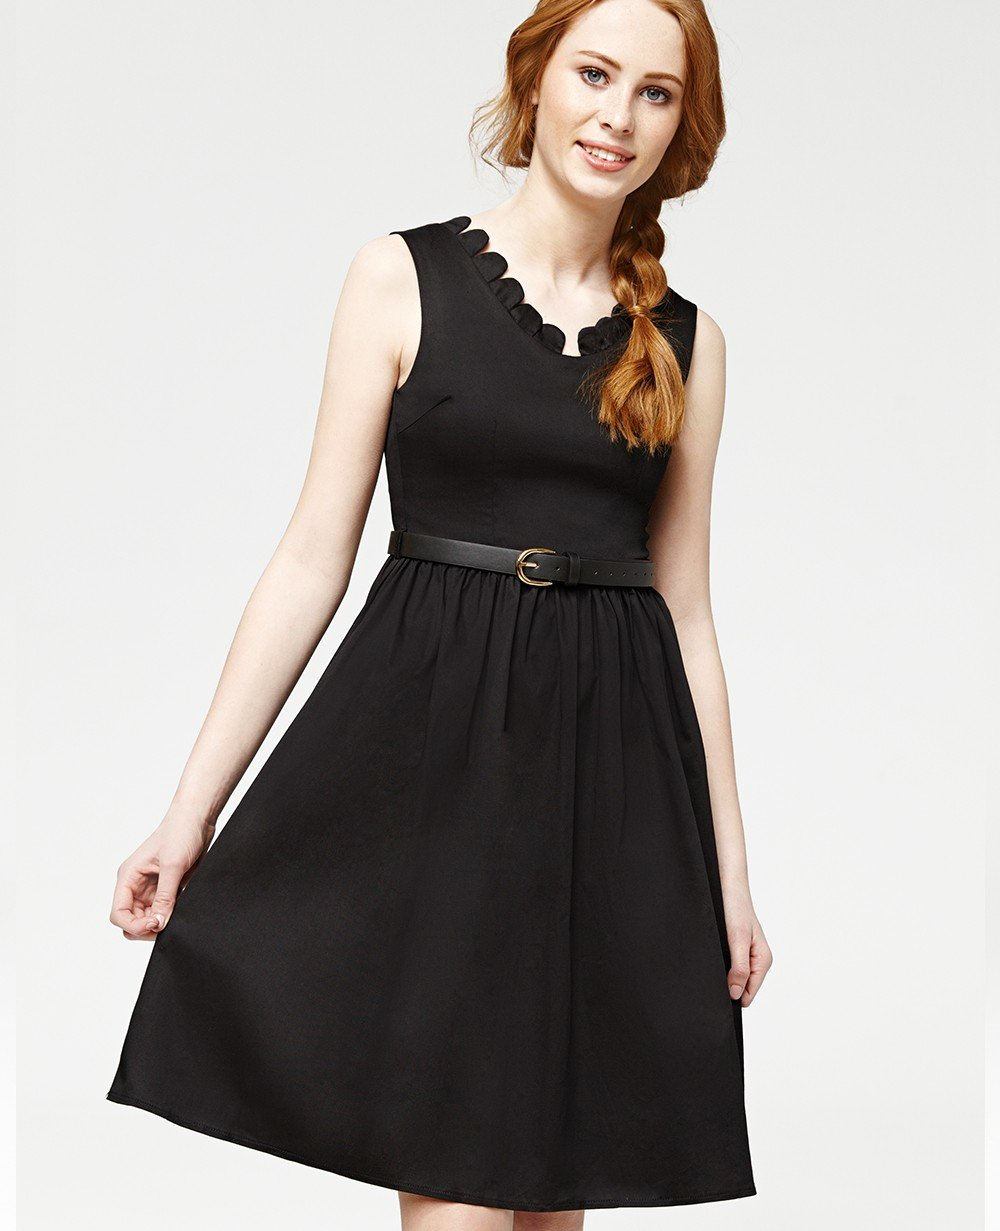 Misfit London Clara Black Scalloped Vintage Inspired Swing Dress